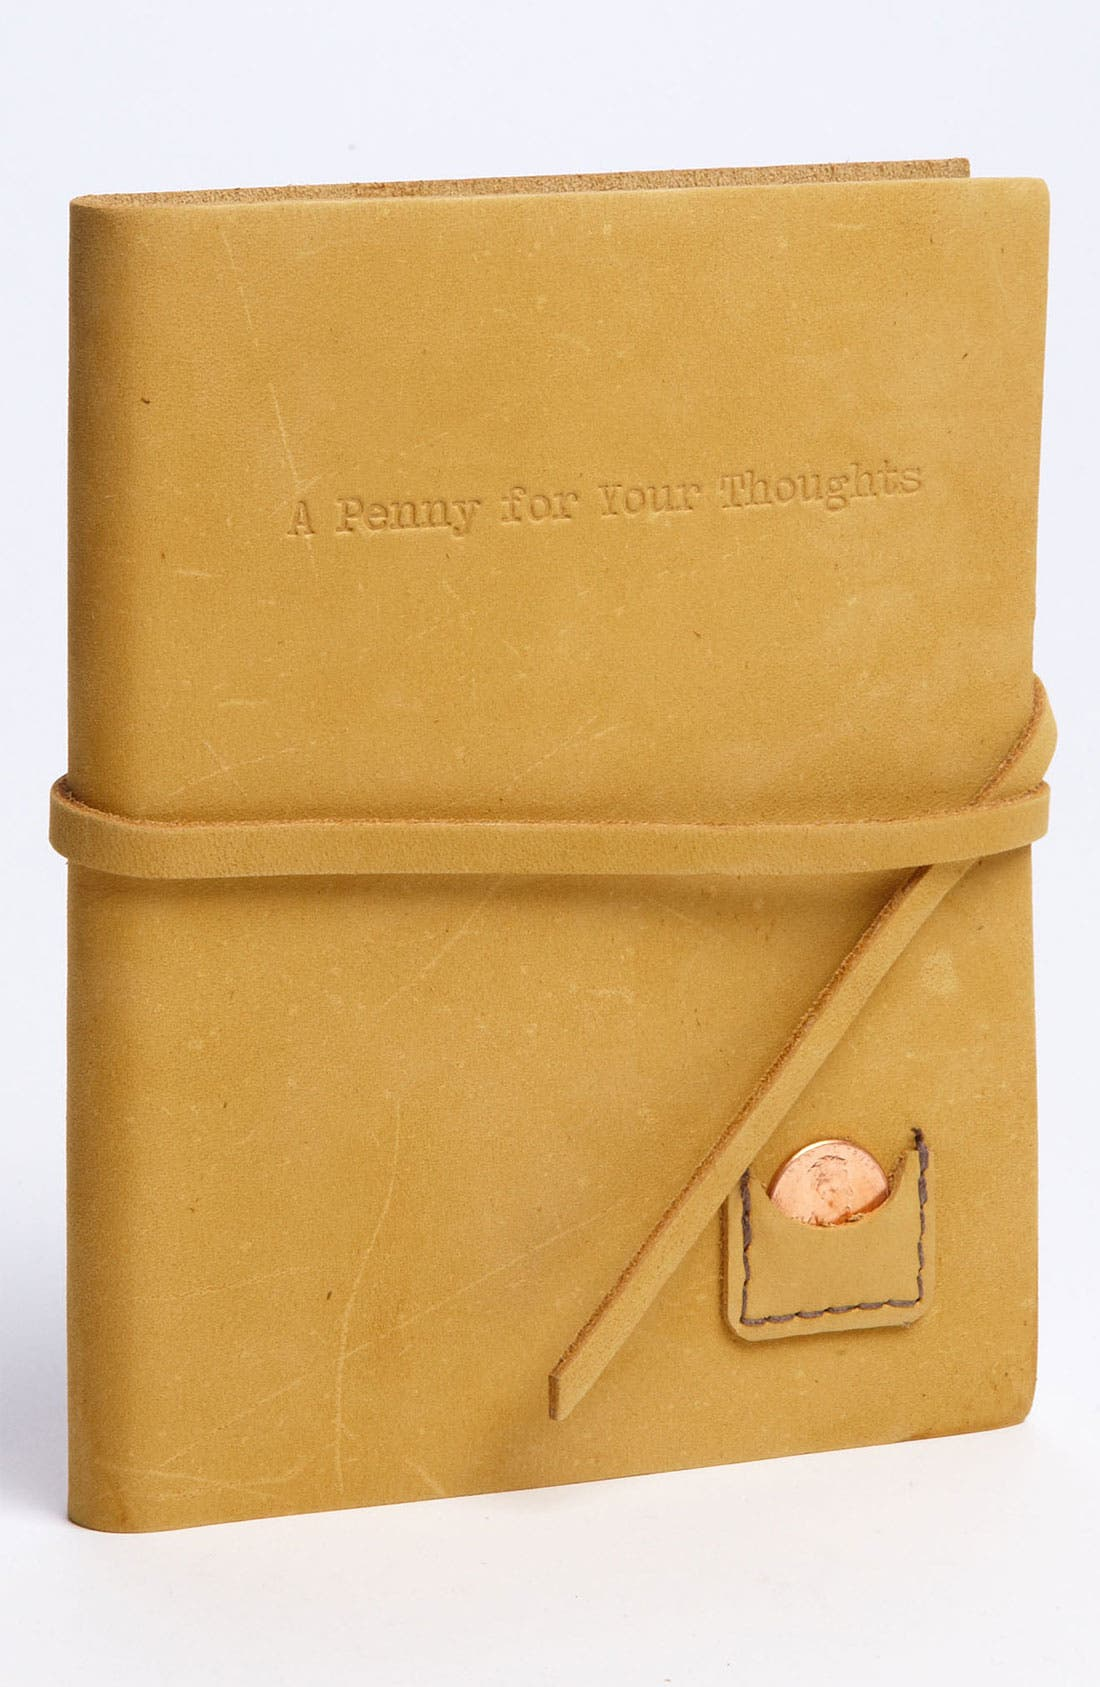 Alternate Image 1 Selected - Studio Penny Lane 'A Penny for Your Thoughts' Leather Journal